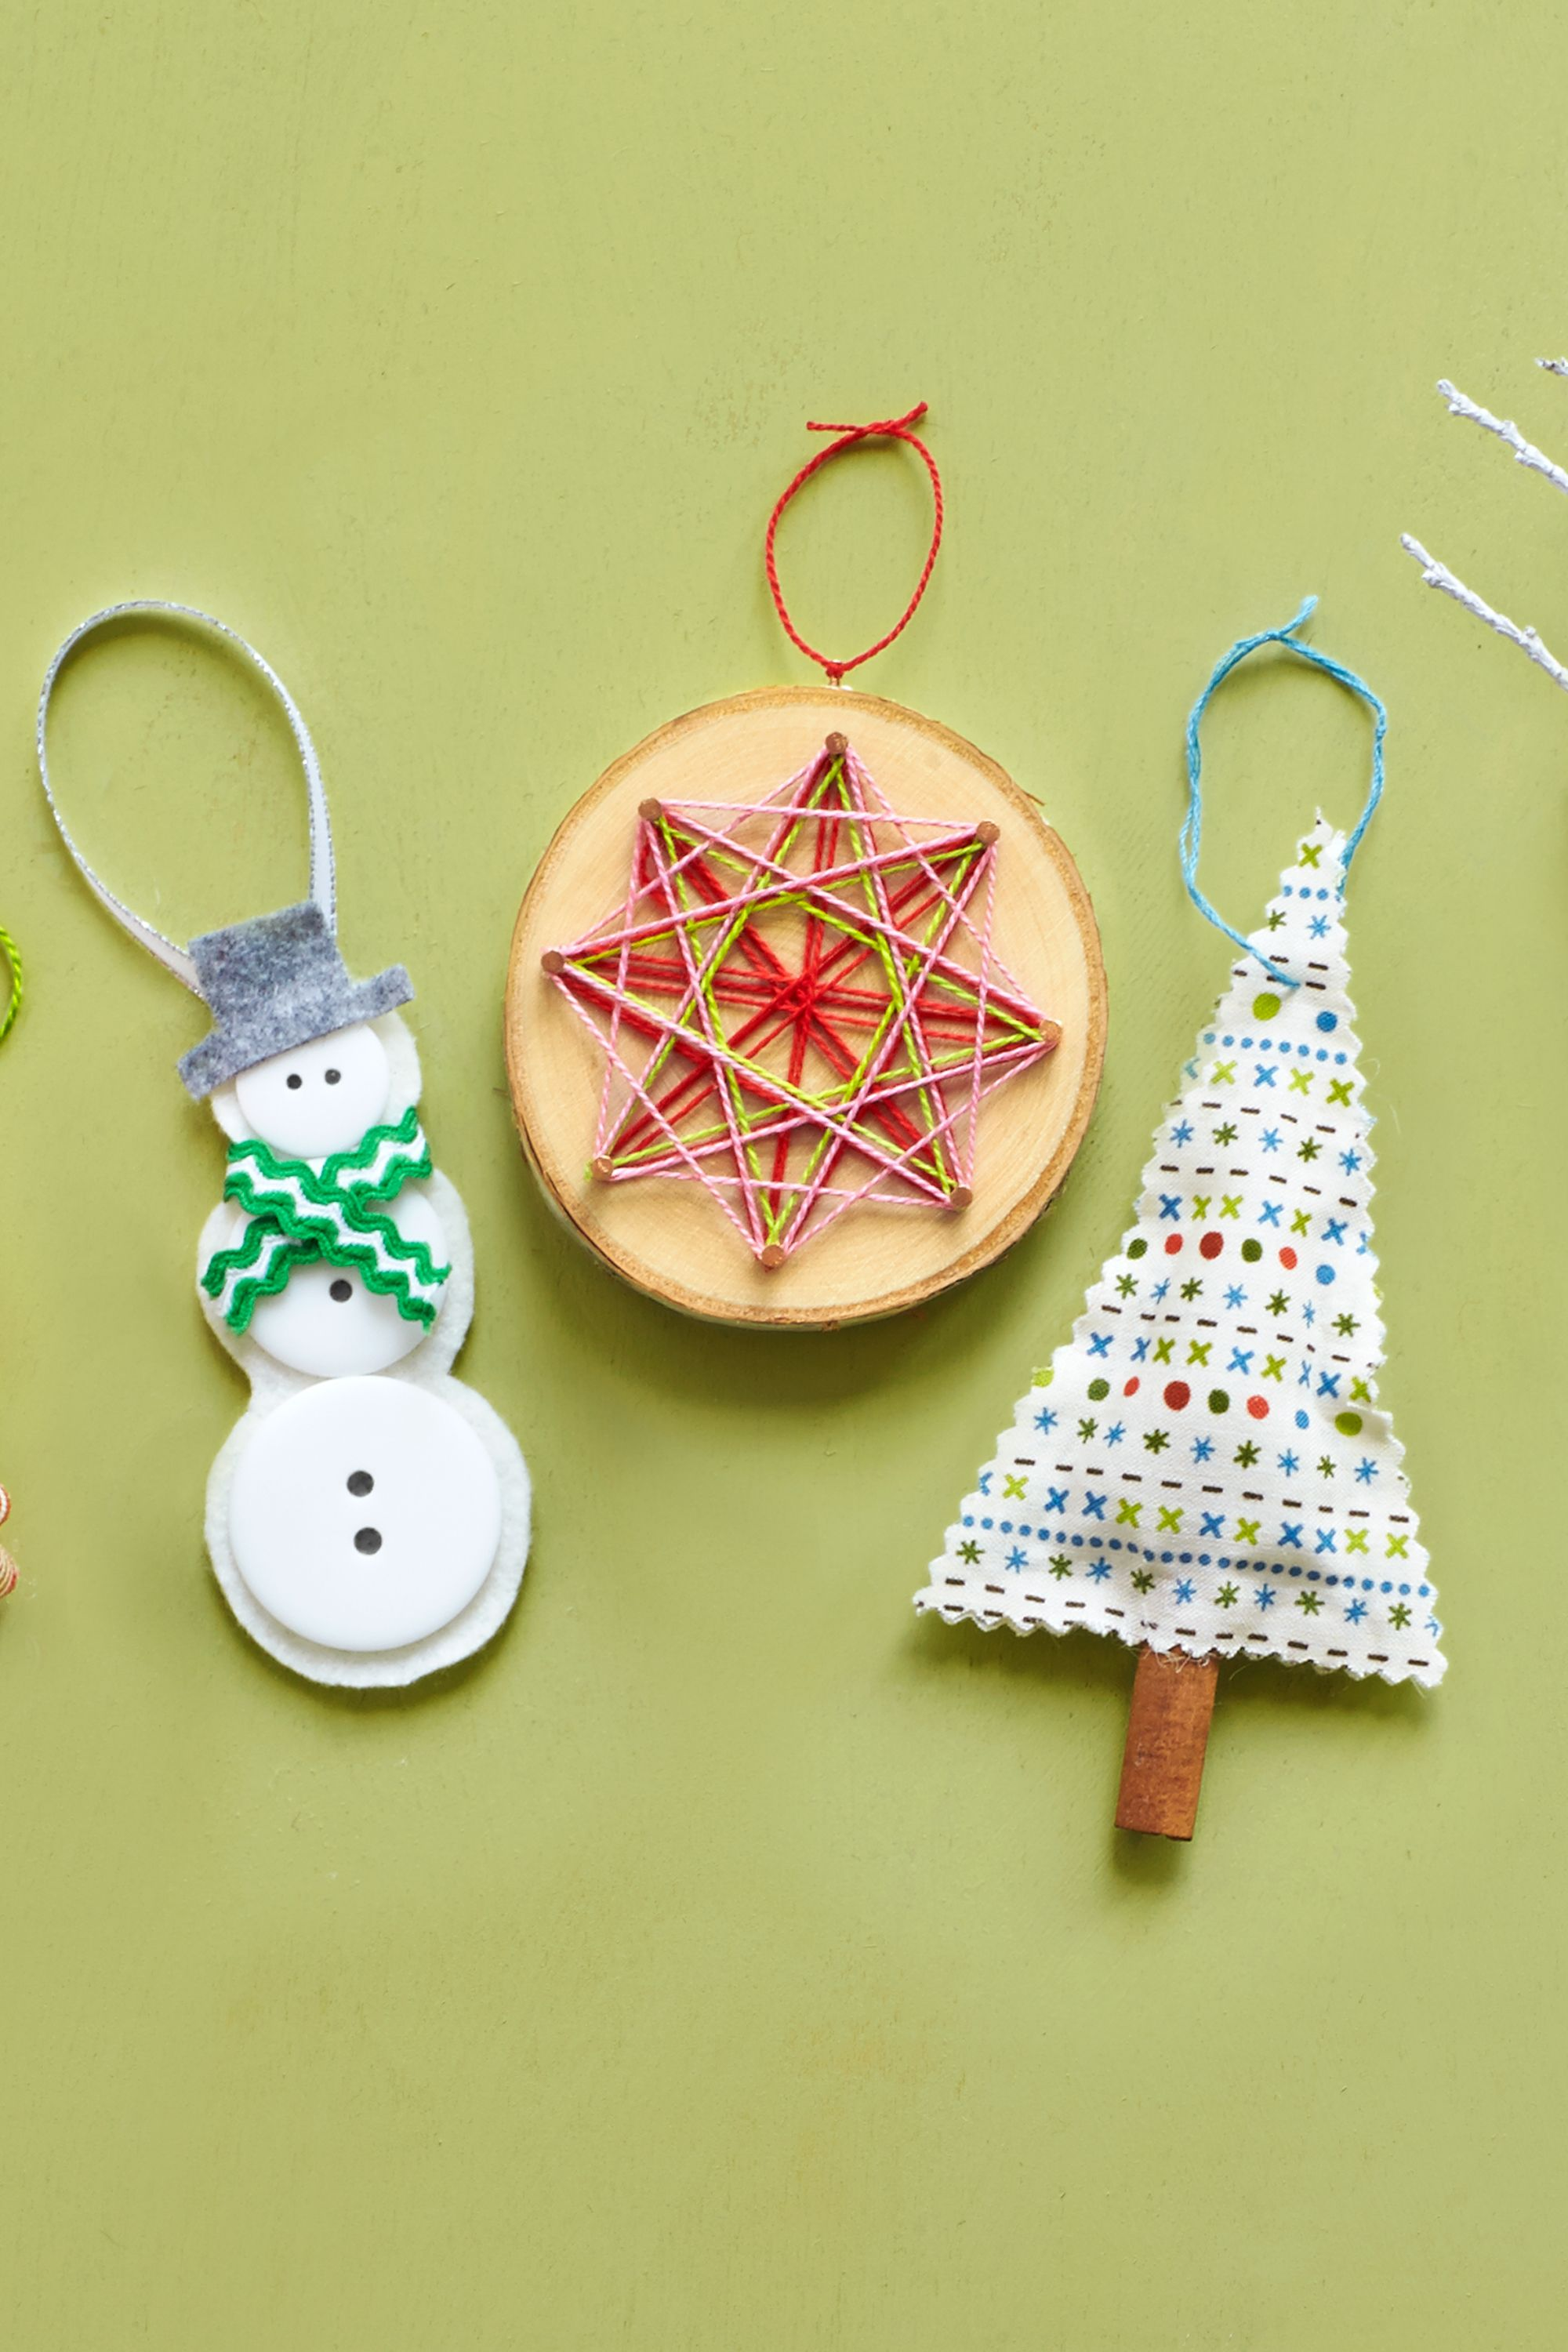 55 Homemade Christmas Ornaments - DIY Crafts with Christmas Tree Ornaments